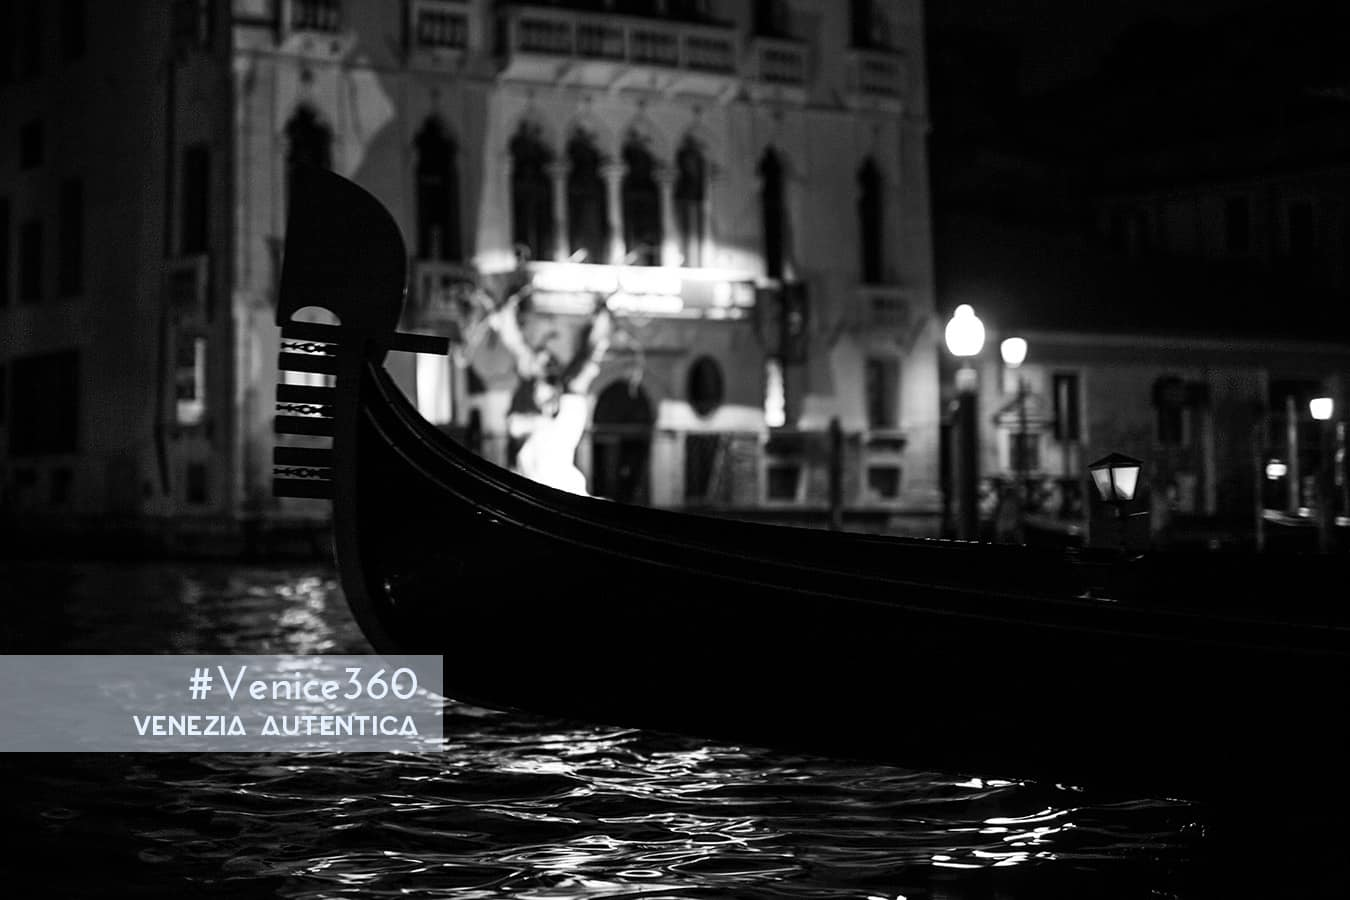 What the Fero da Prova at the gondola's bow means is beautiful. Truly. - Venezia Autentica | Discover and Support the Authentic Venice - One often unknown, symbols of Venice is the ferò da próva, the Front Ornament of the Gondola: its beautiful shape and decorations are full of meaning.